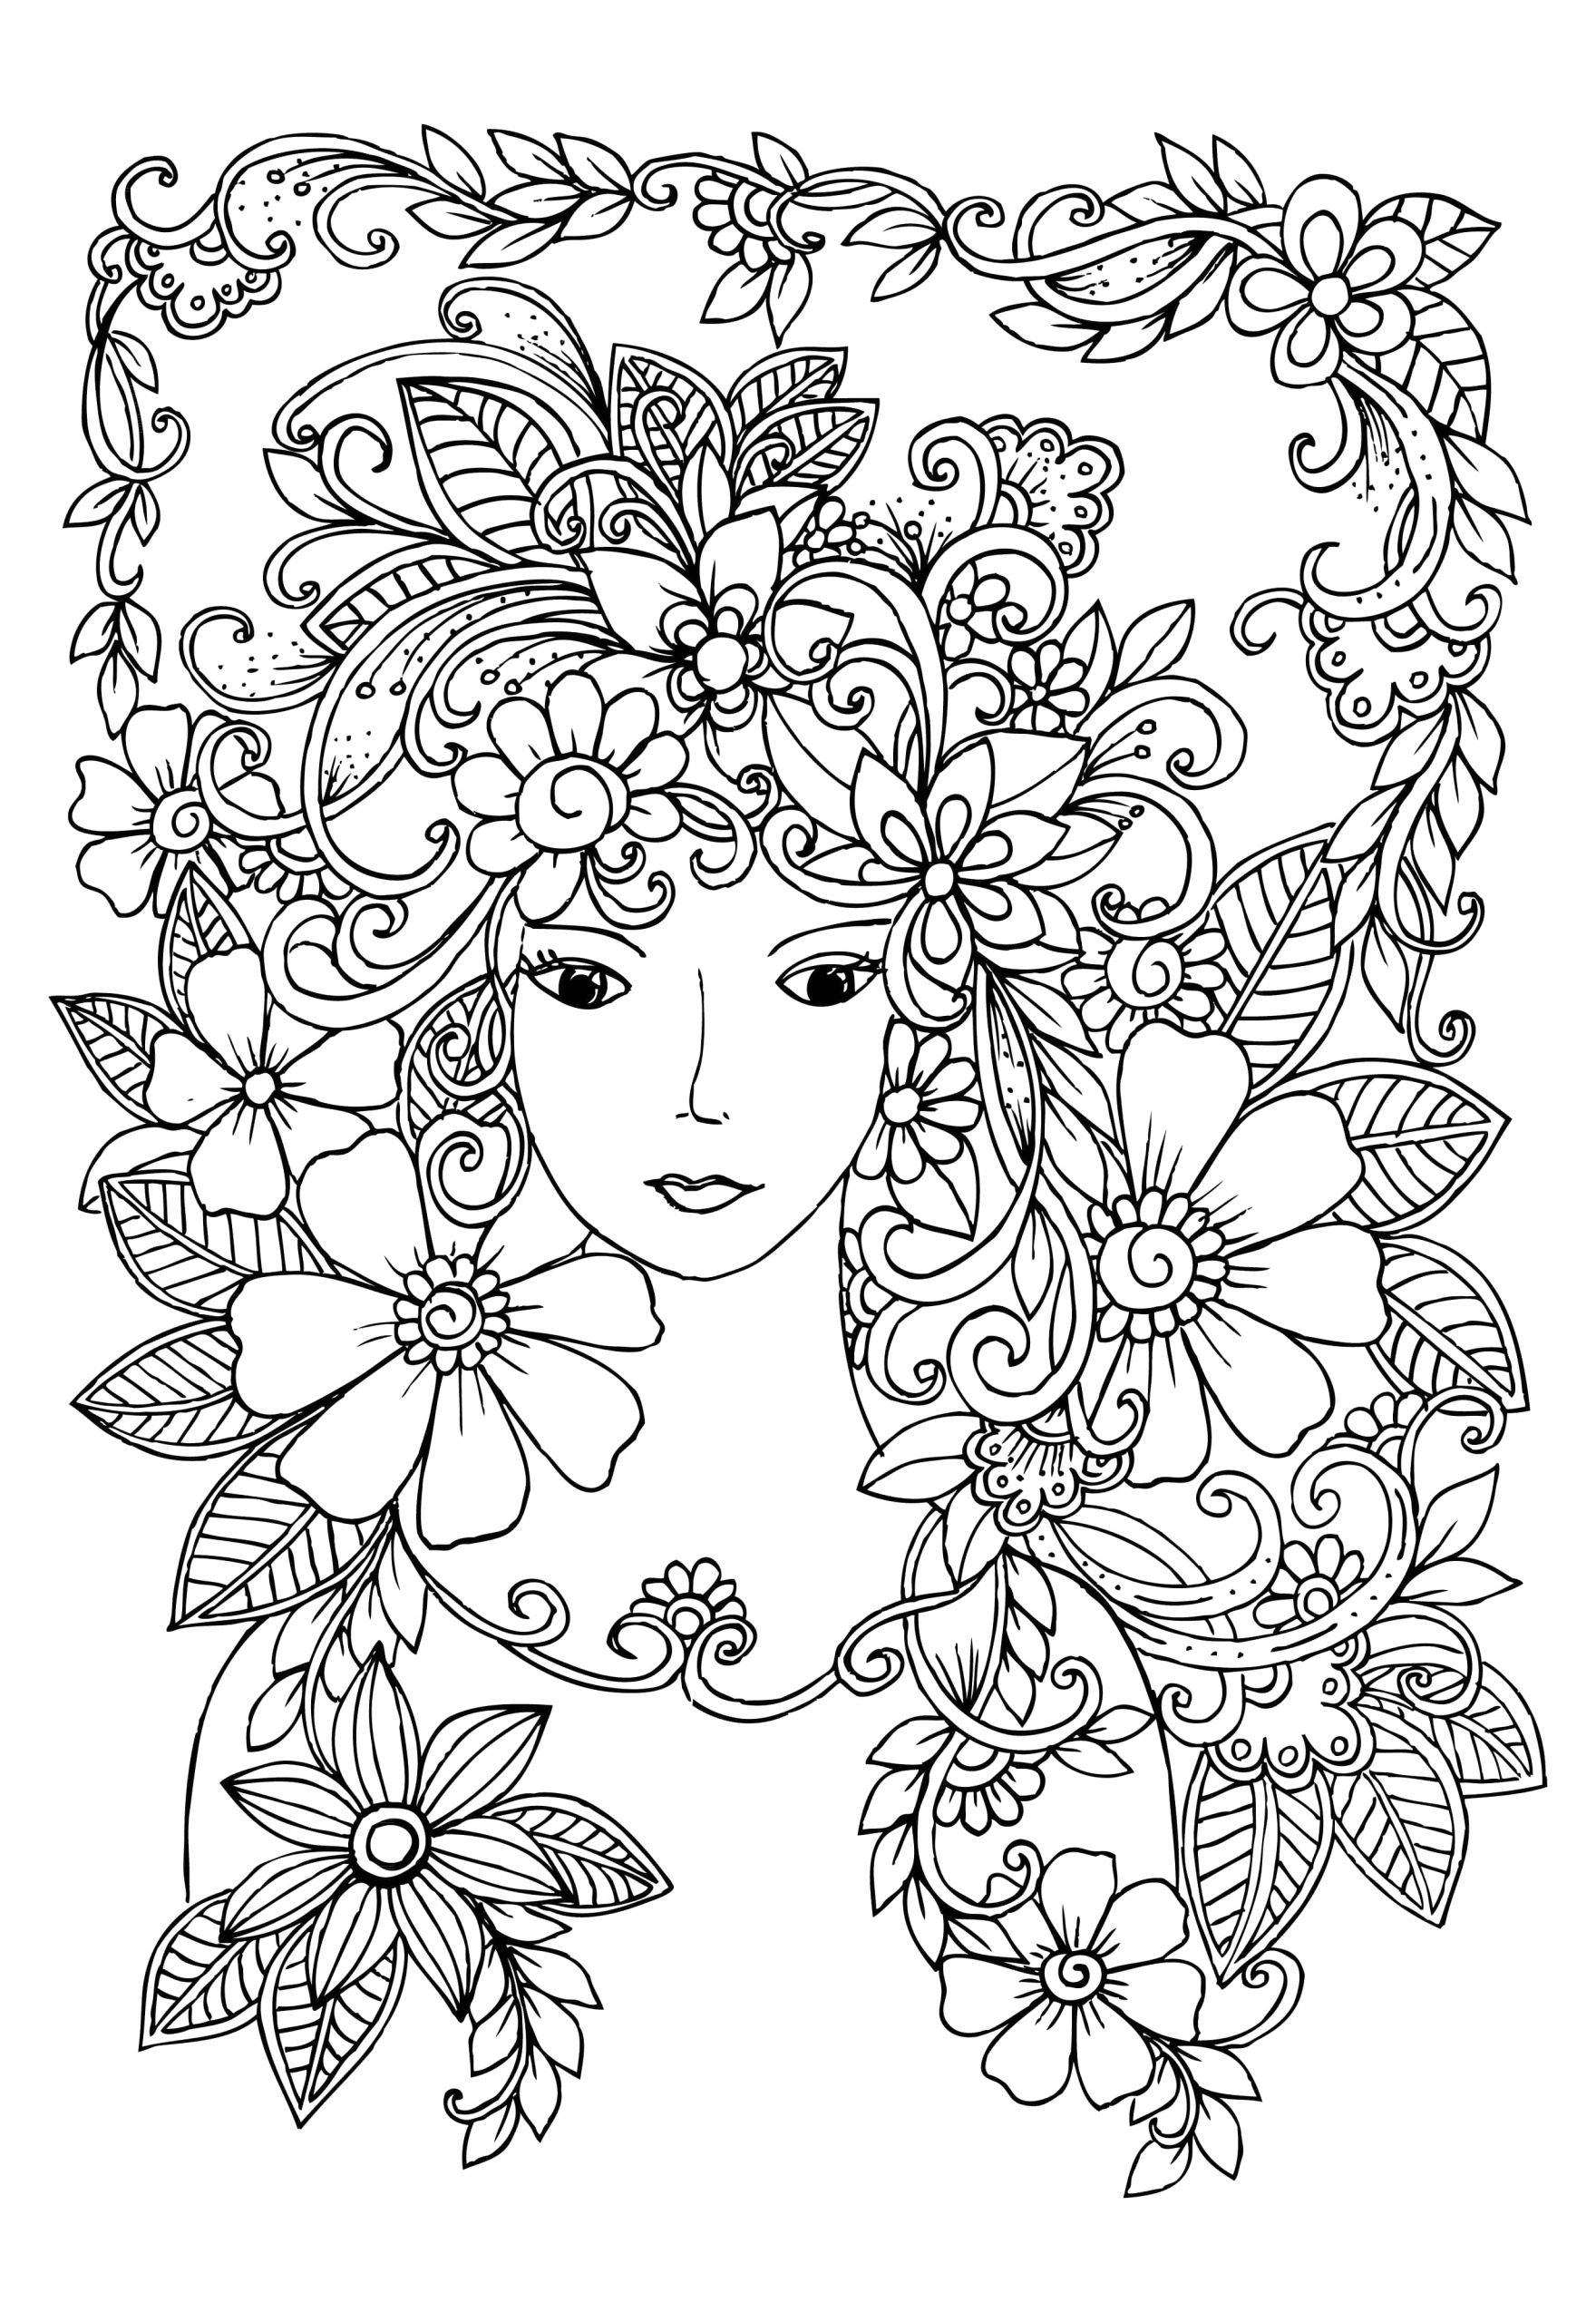 plex coloring pages for girls aged 10 12 years